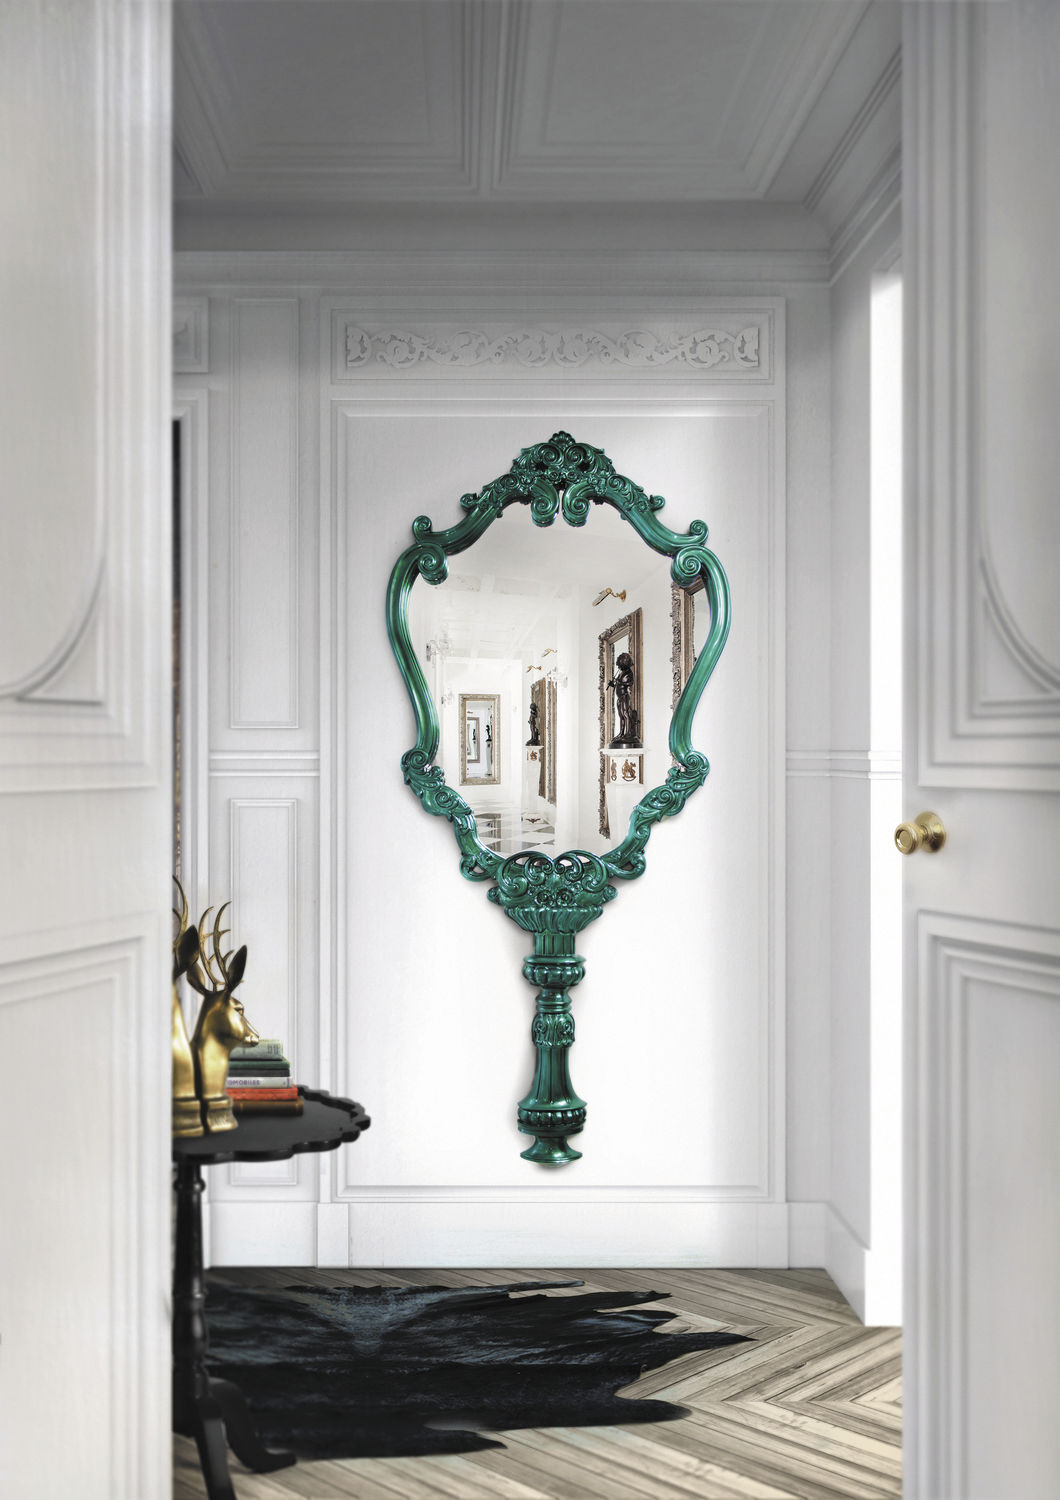 The Most Beautiful Wall Mirror Designs for Your Living Room  wall mirror designs The Most Beautiful Wall Mirror Designs for Your Living Room The Most Beautiful Wall Mirror Designs for Your Living Room8